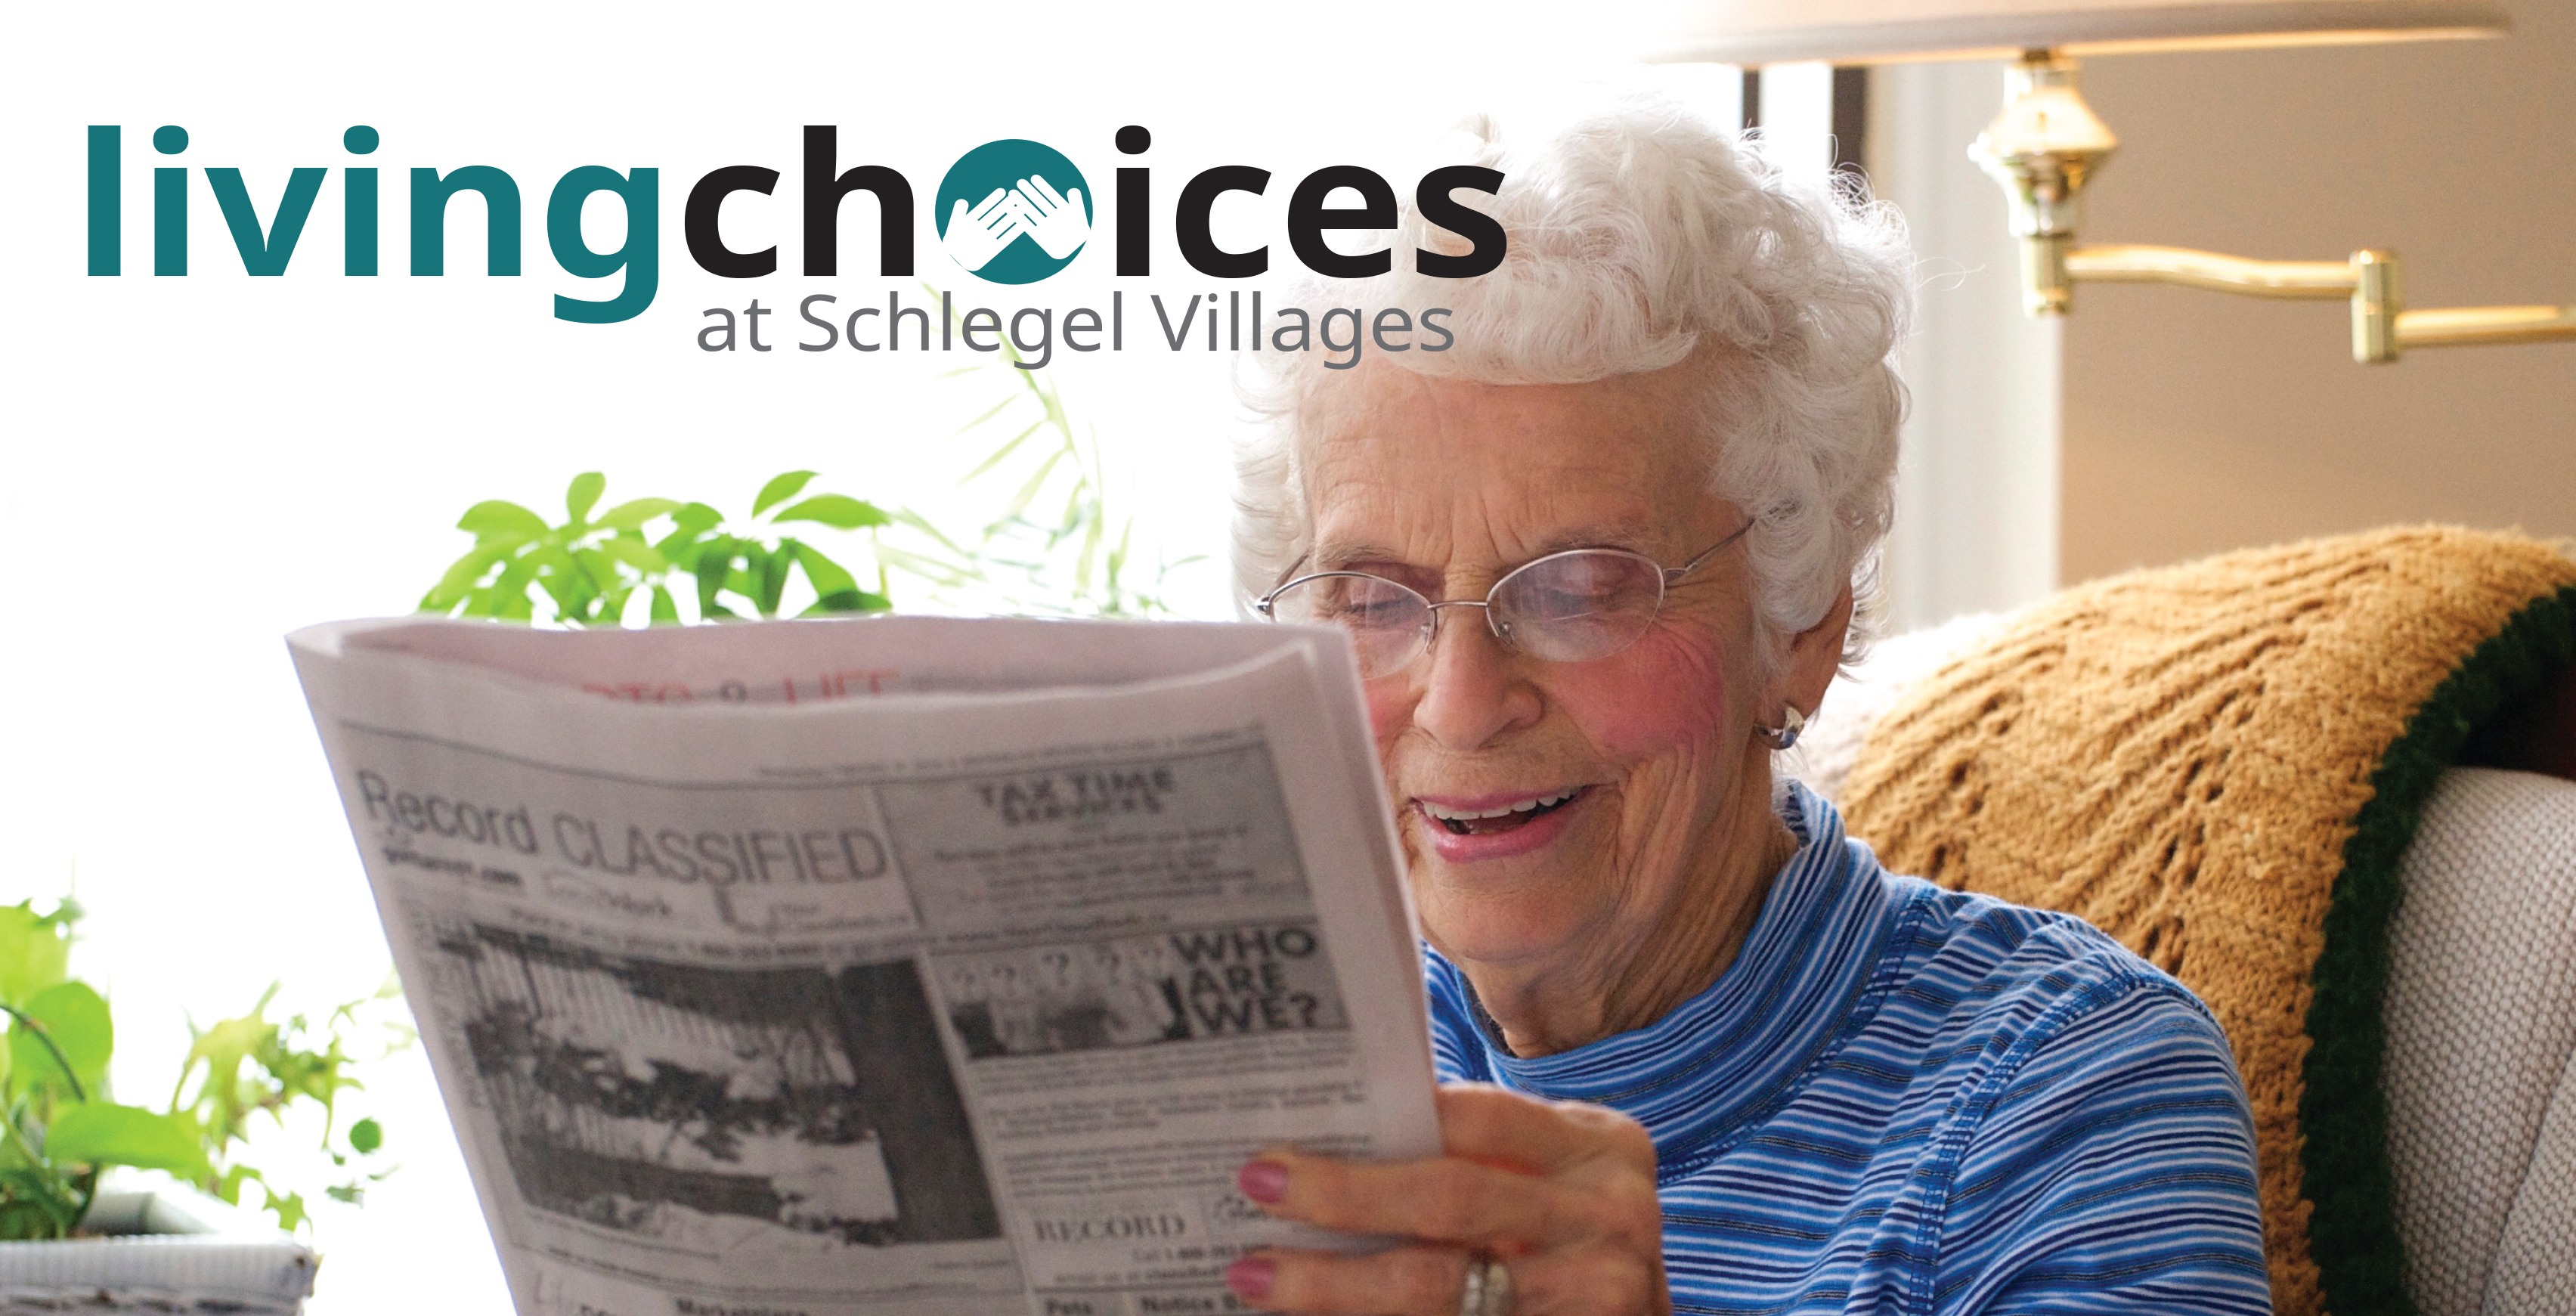 Living Choices at Schlegel Villages